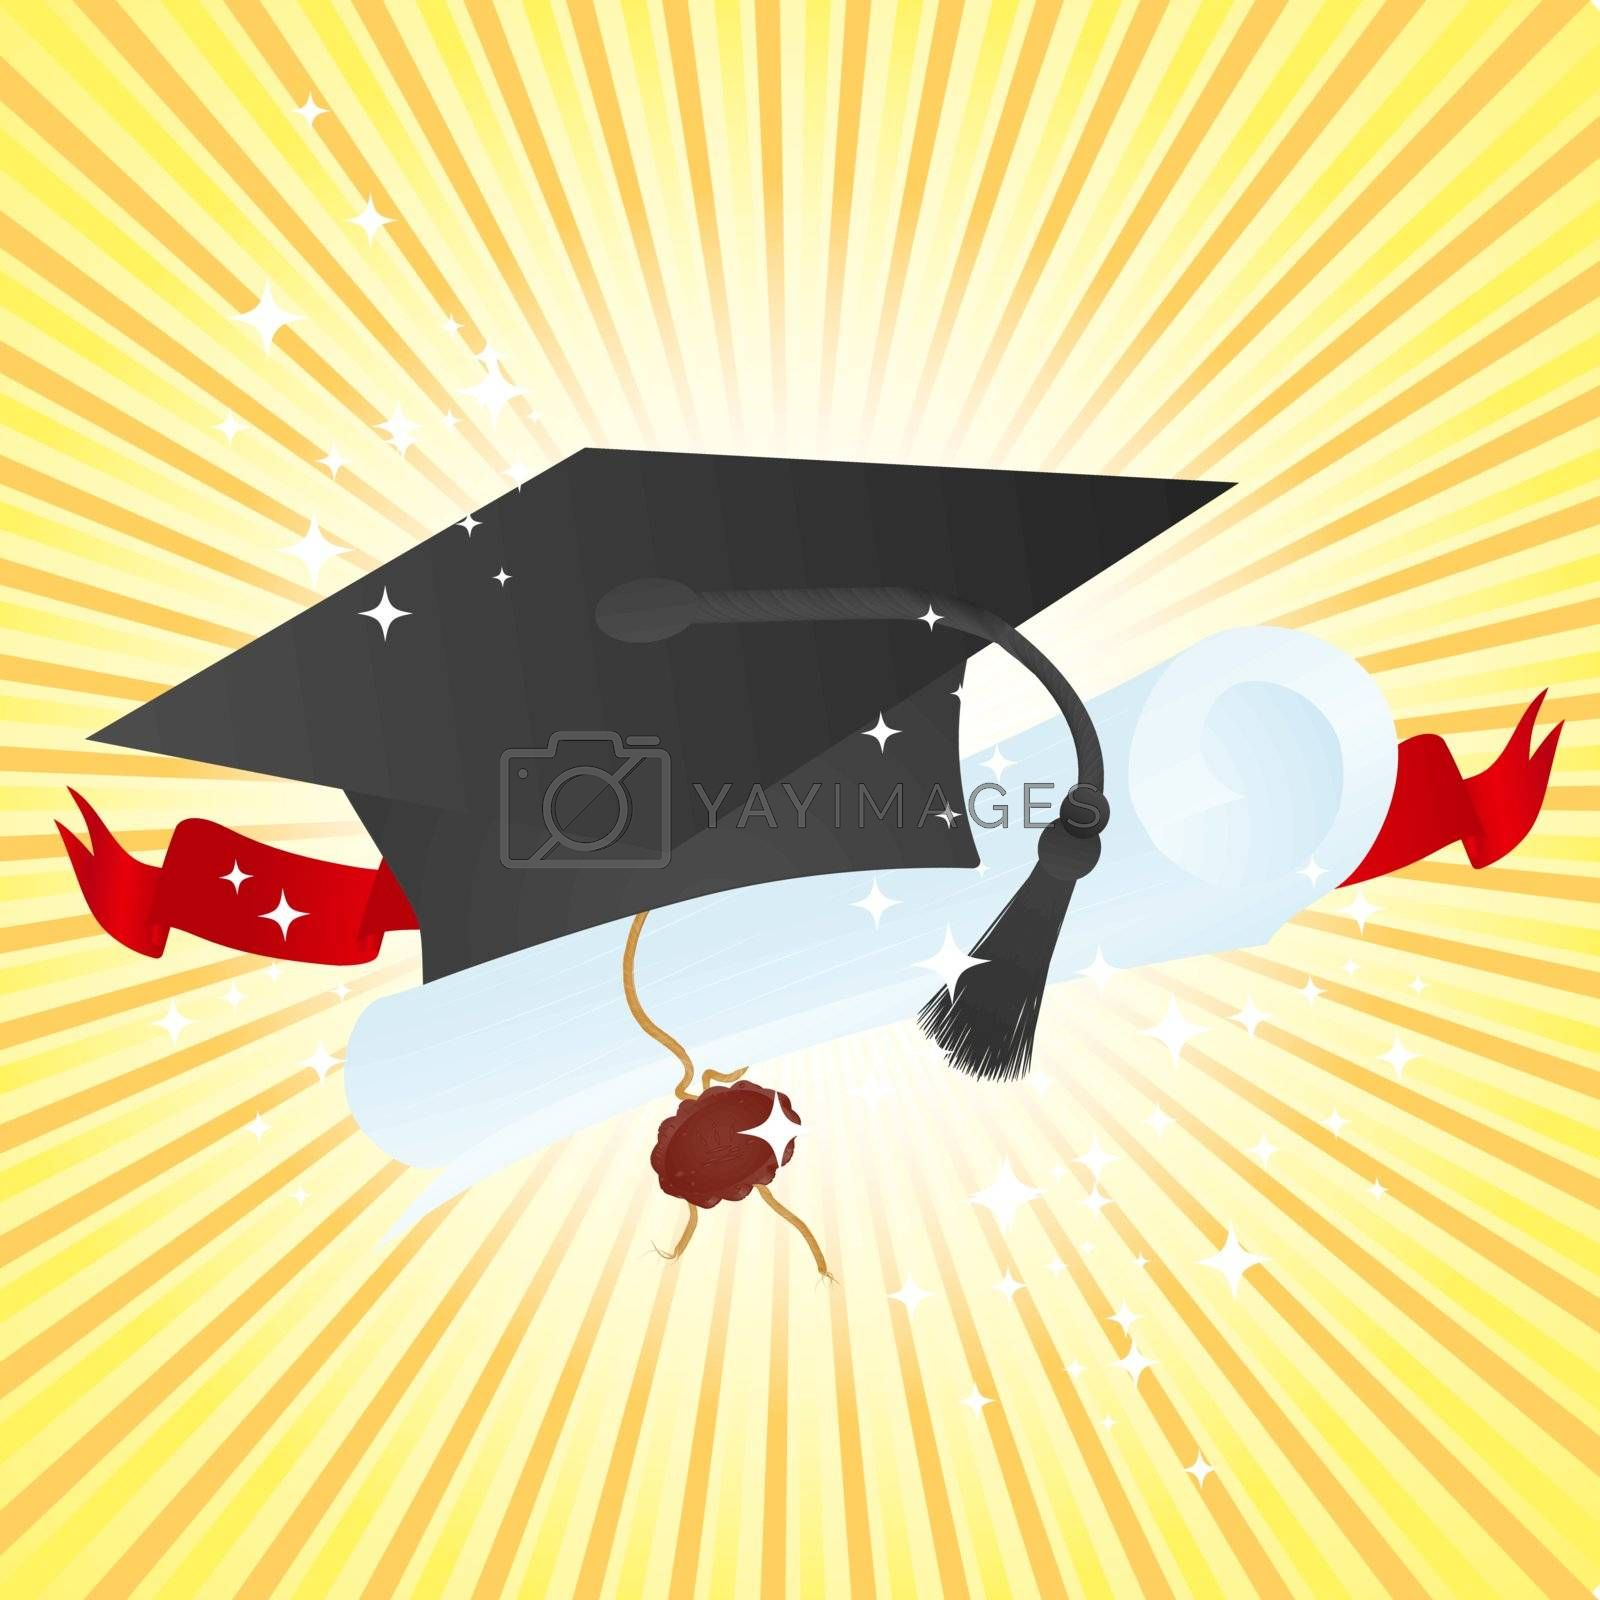 Education theme: graduate hat and diploma